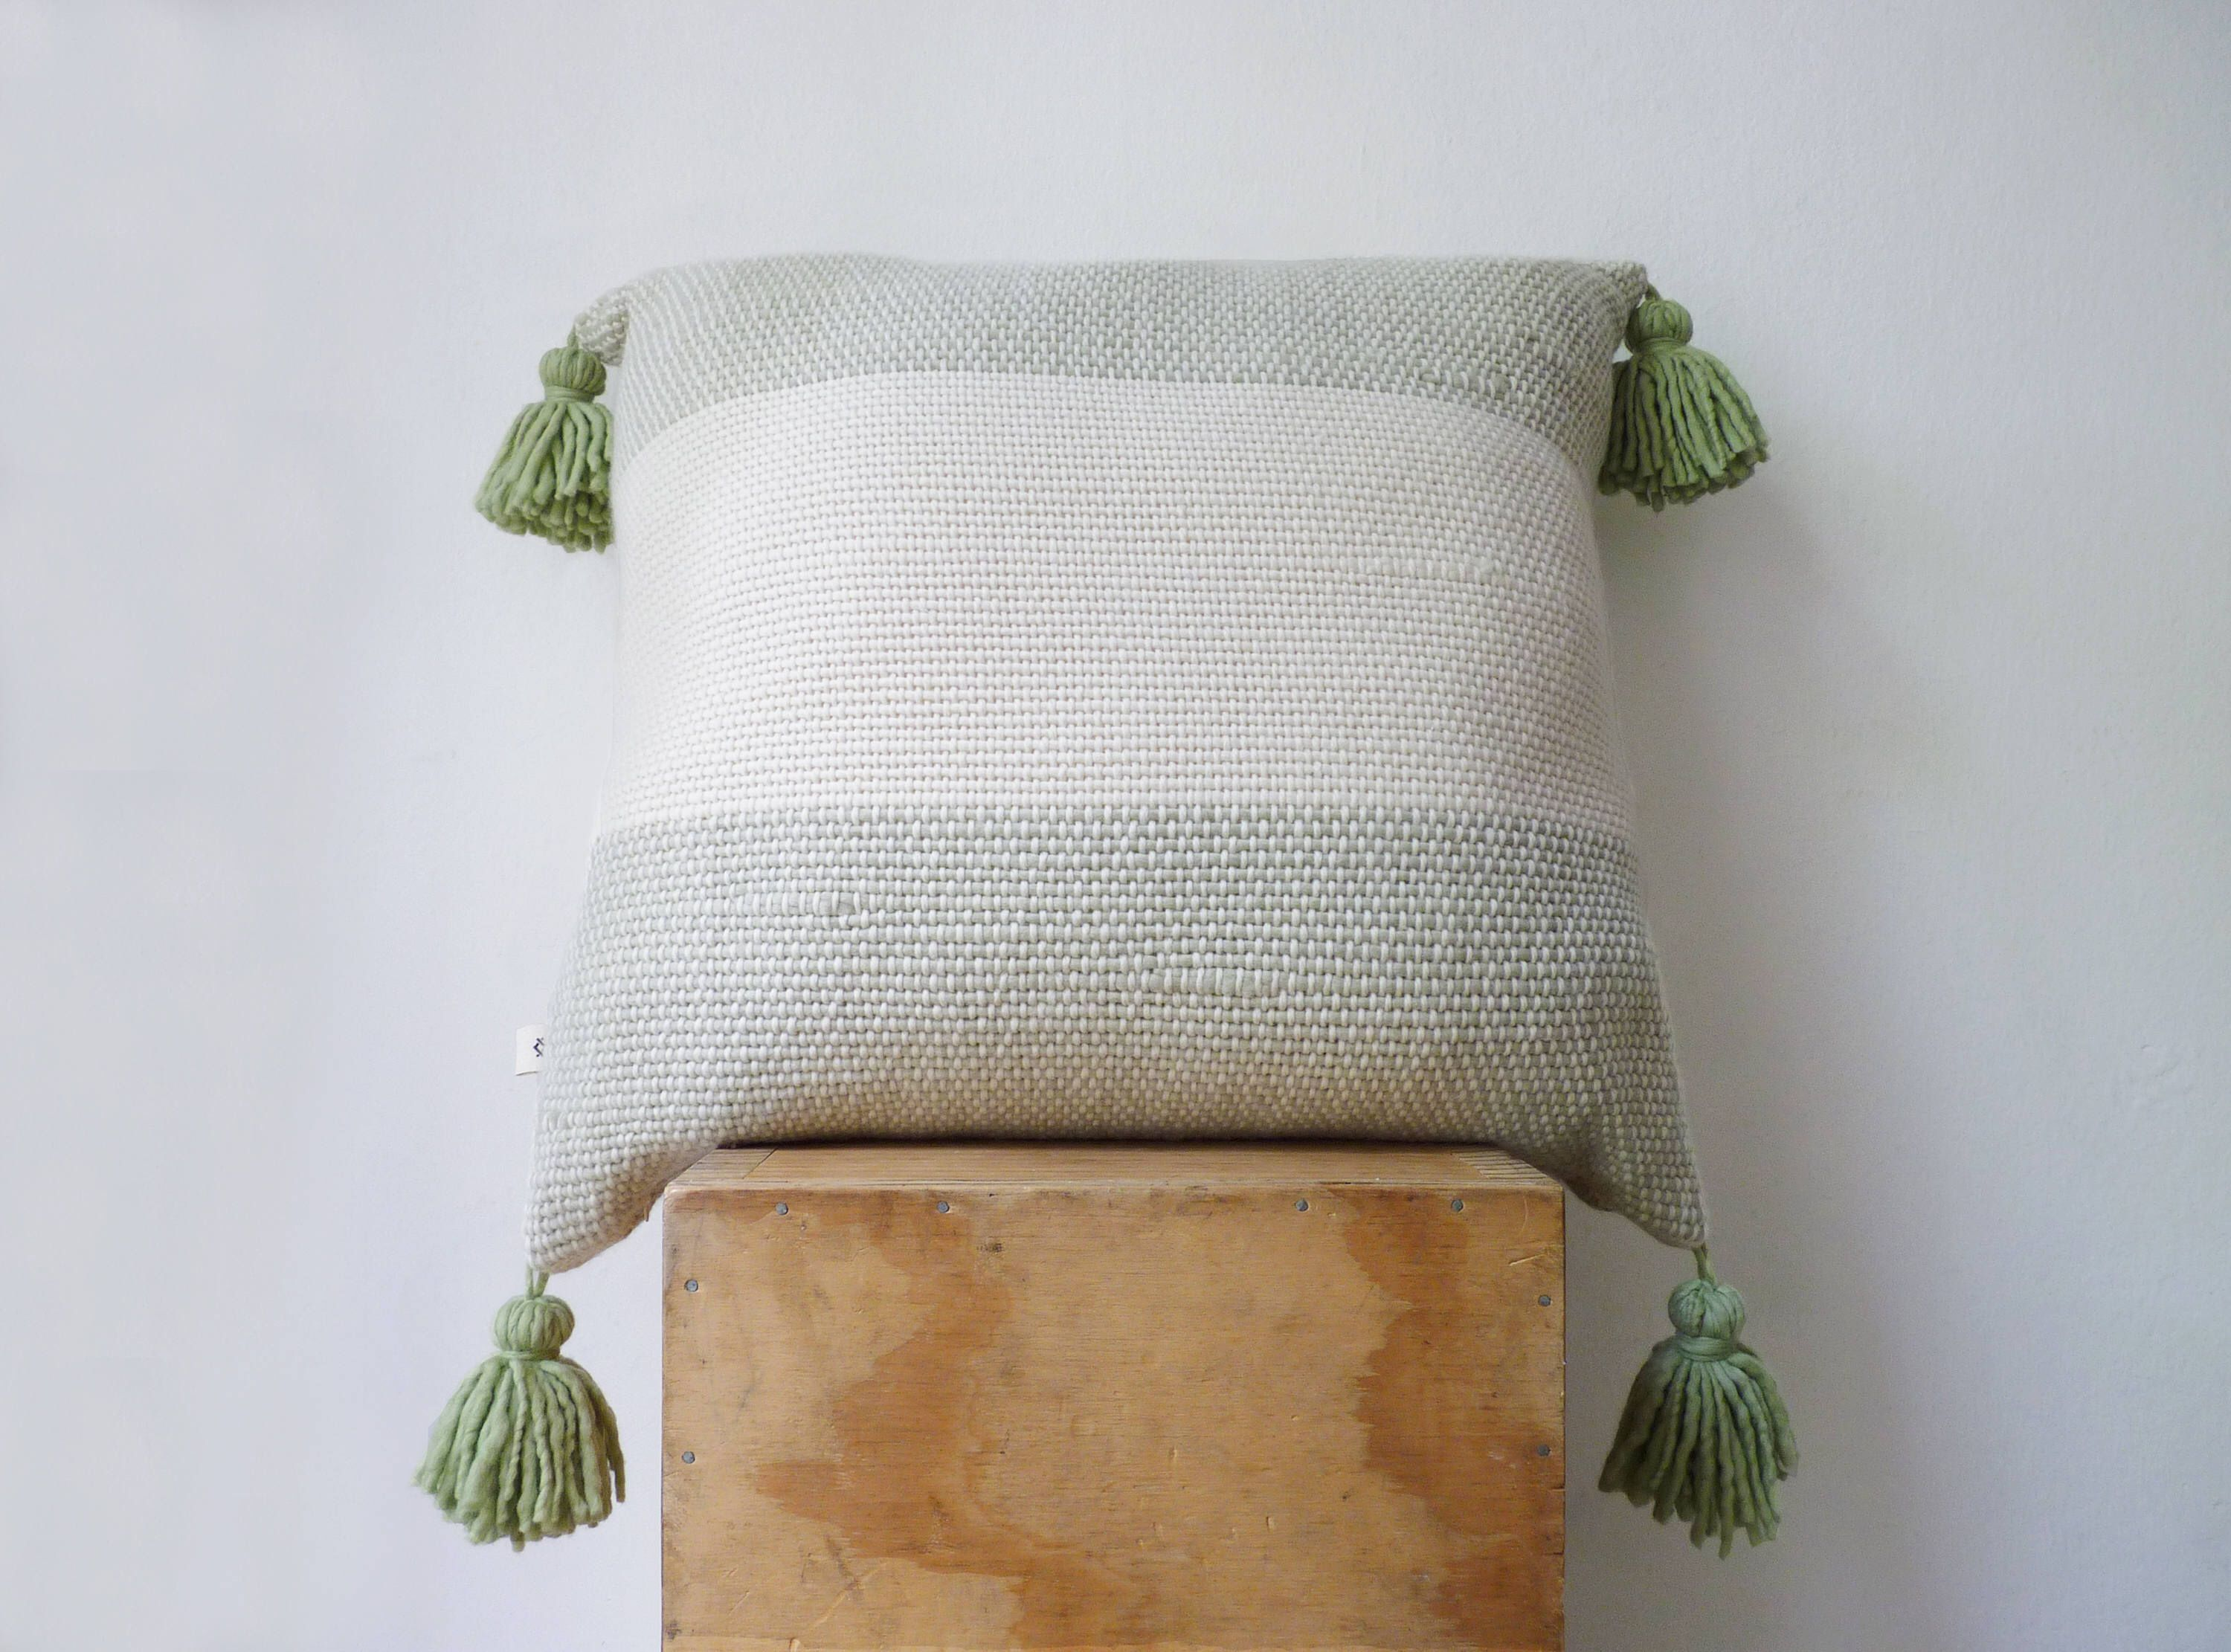 Pin by roylyn kohutek on crafts and projects pinterest knitting bags